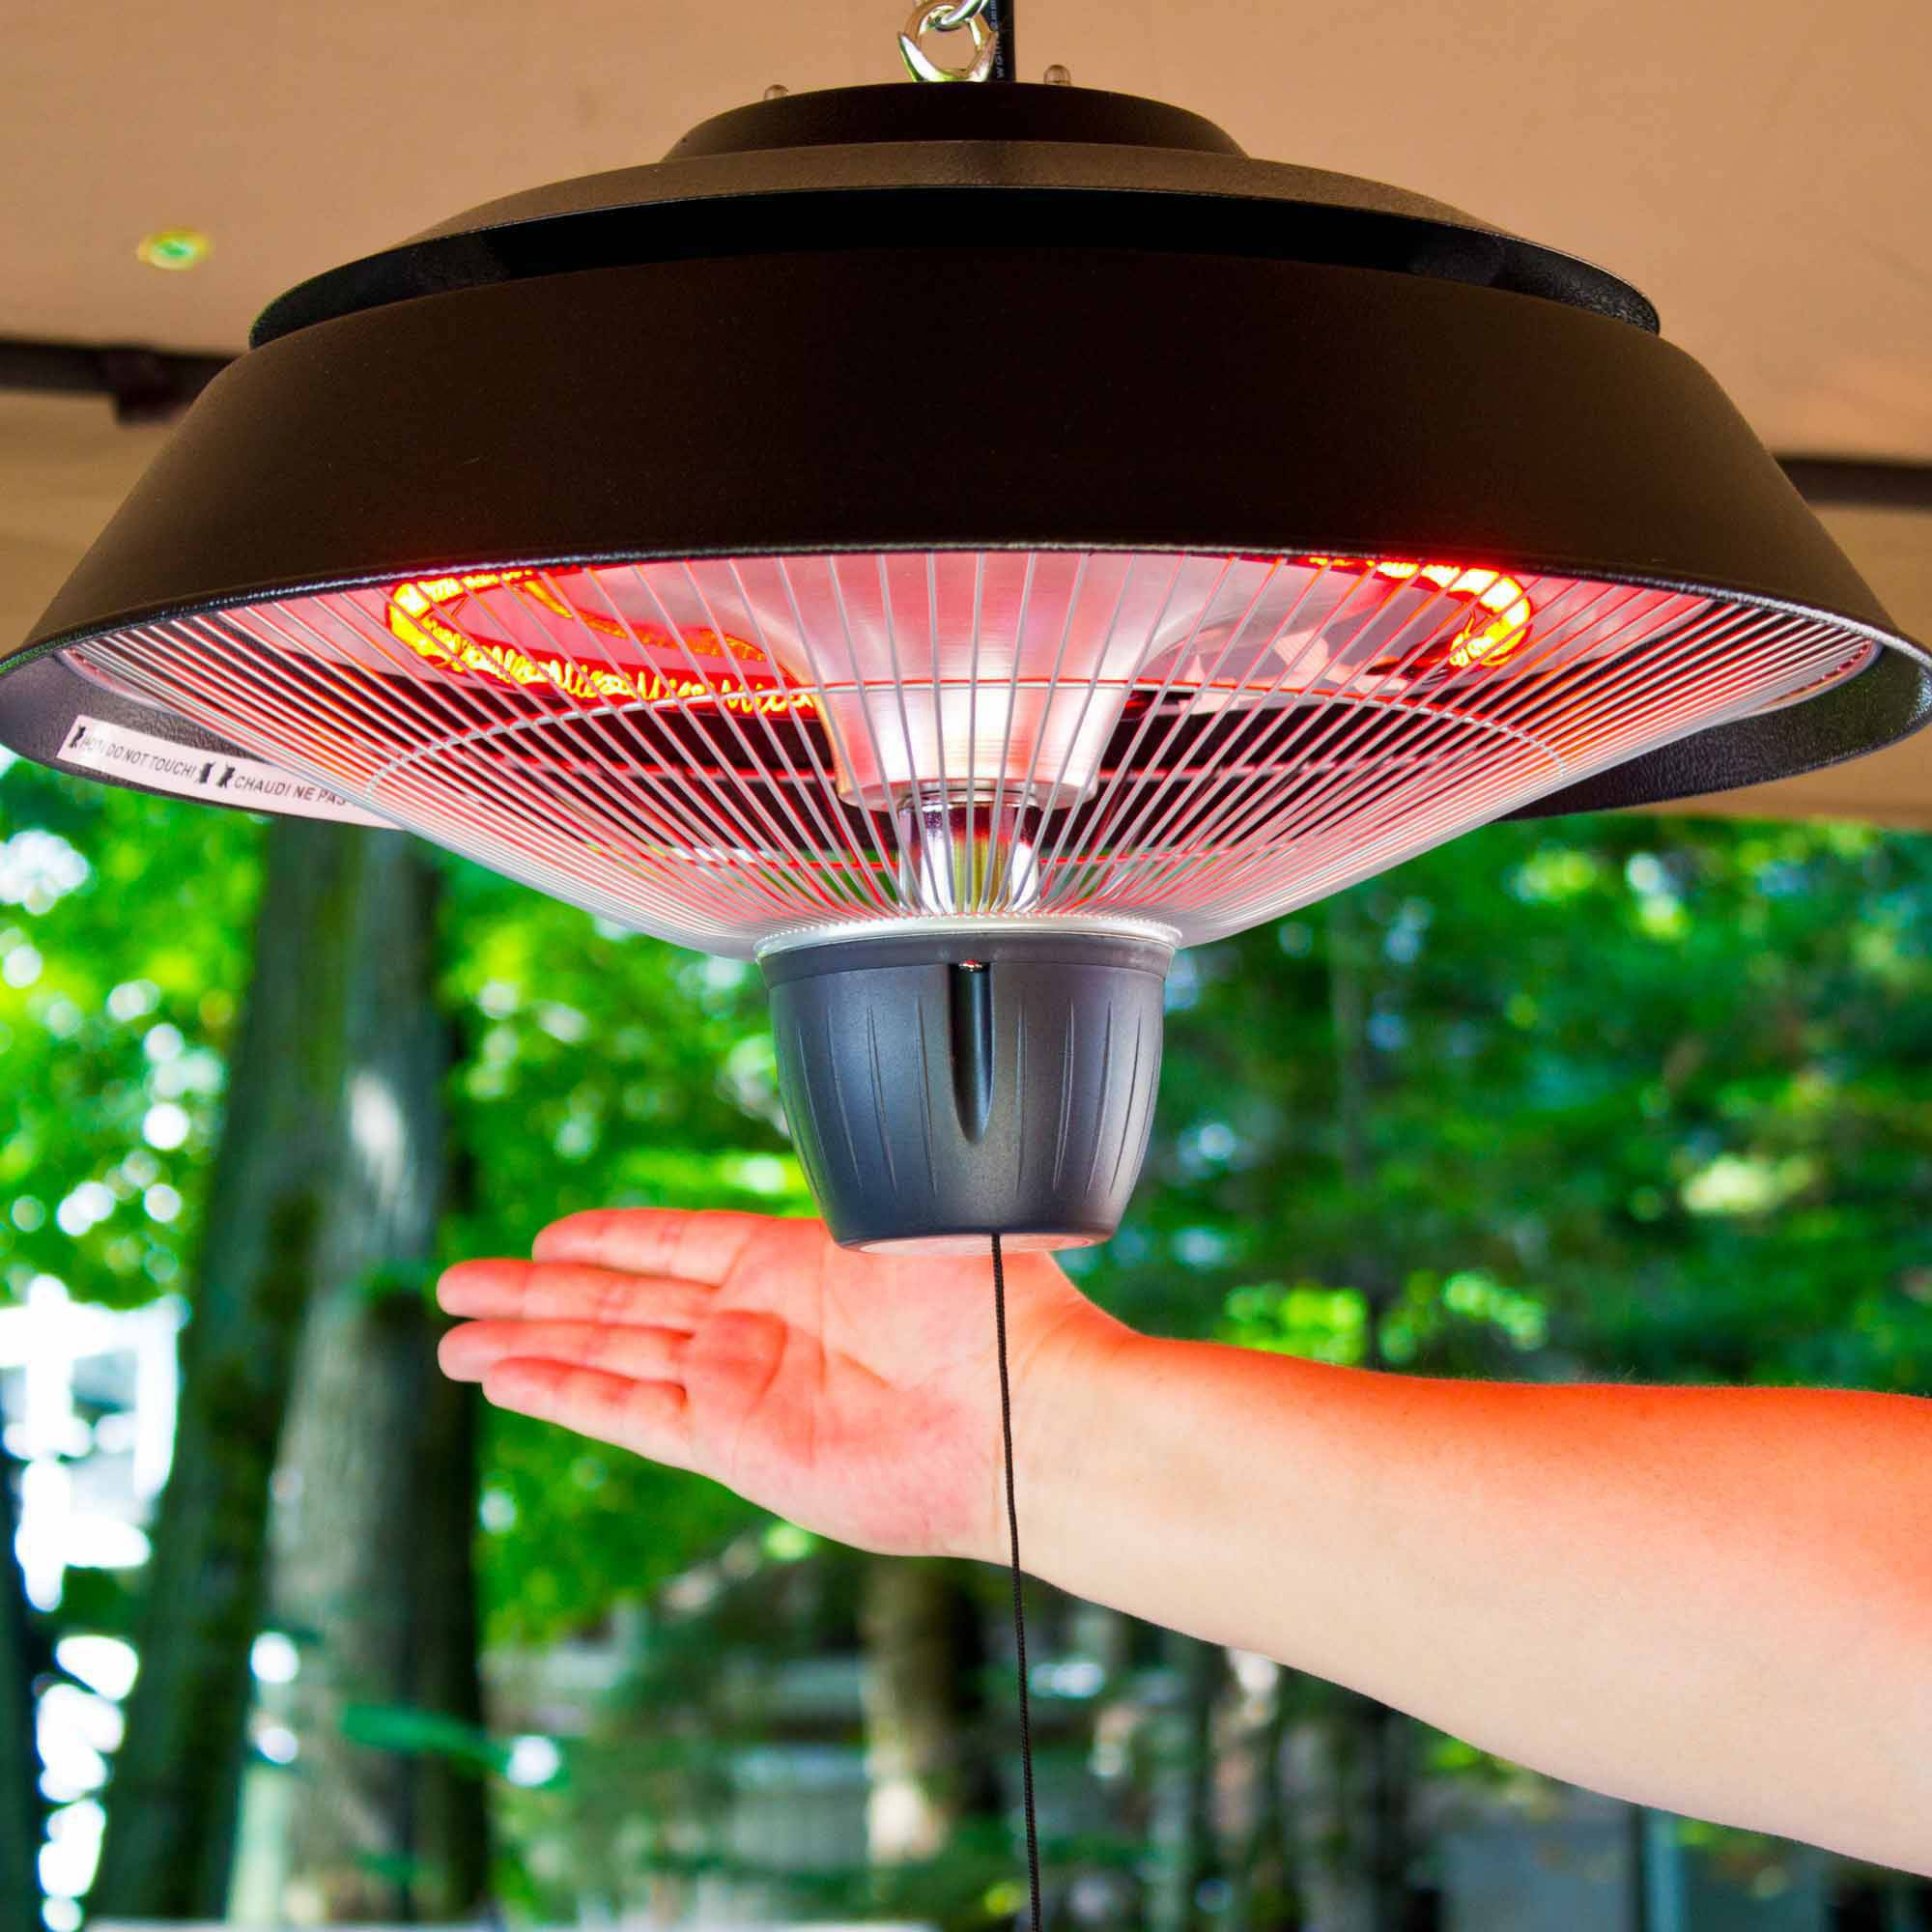 Energ Hea 21723 Hanging Infrared Electric Gazebo Heater with regard to dimensions 2000 X 2000